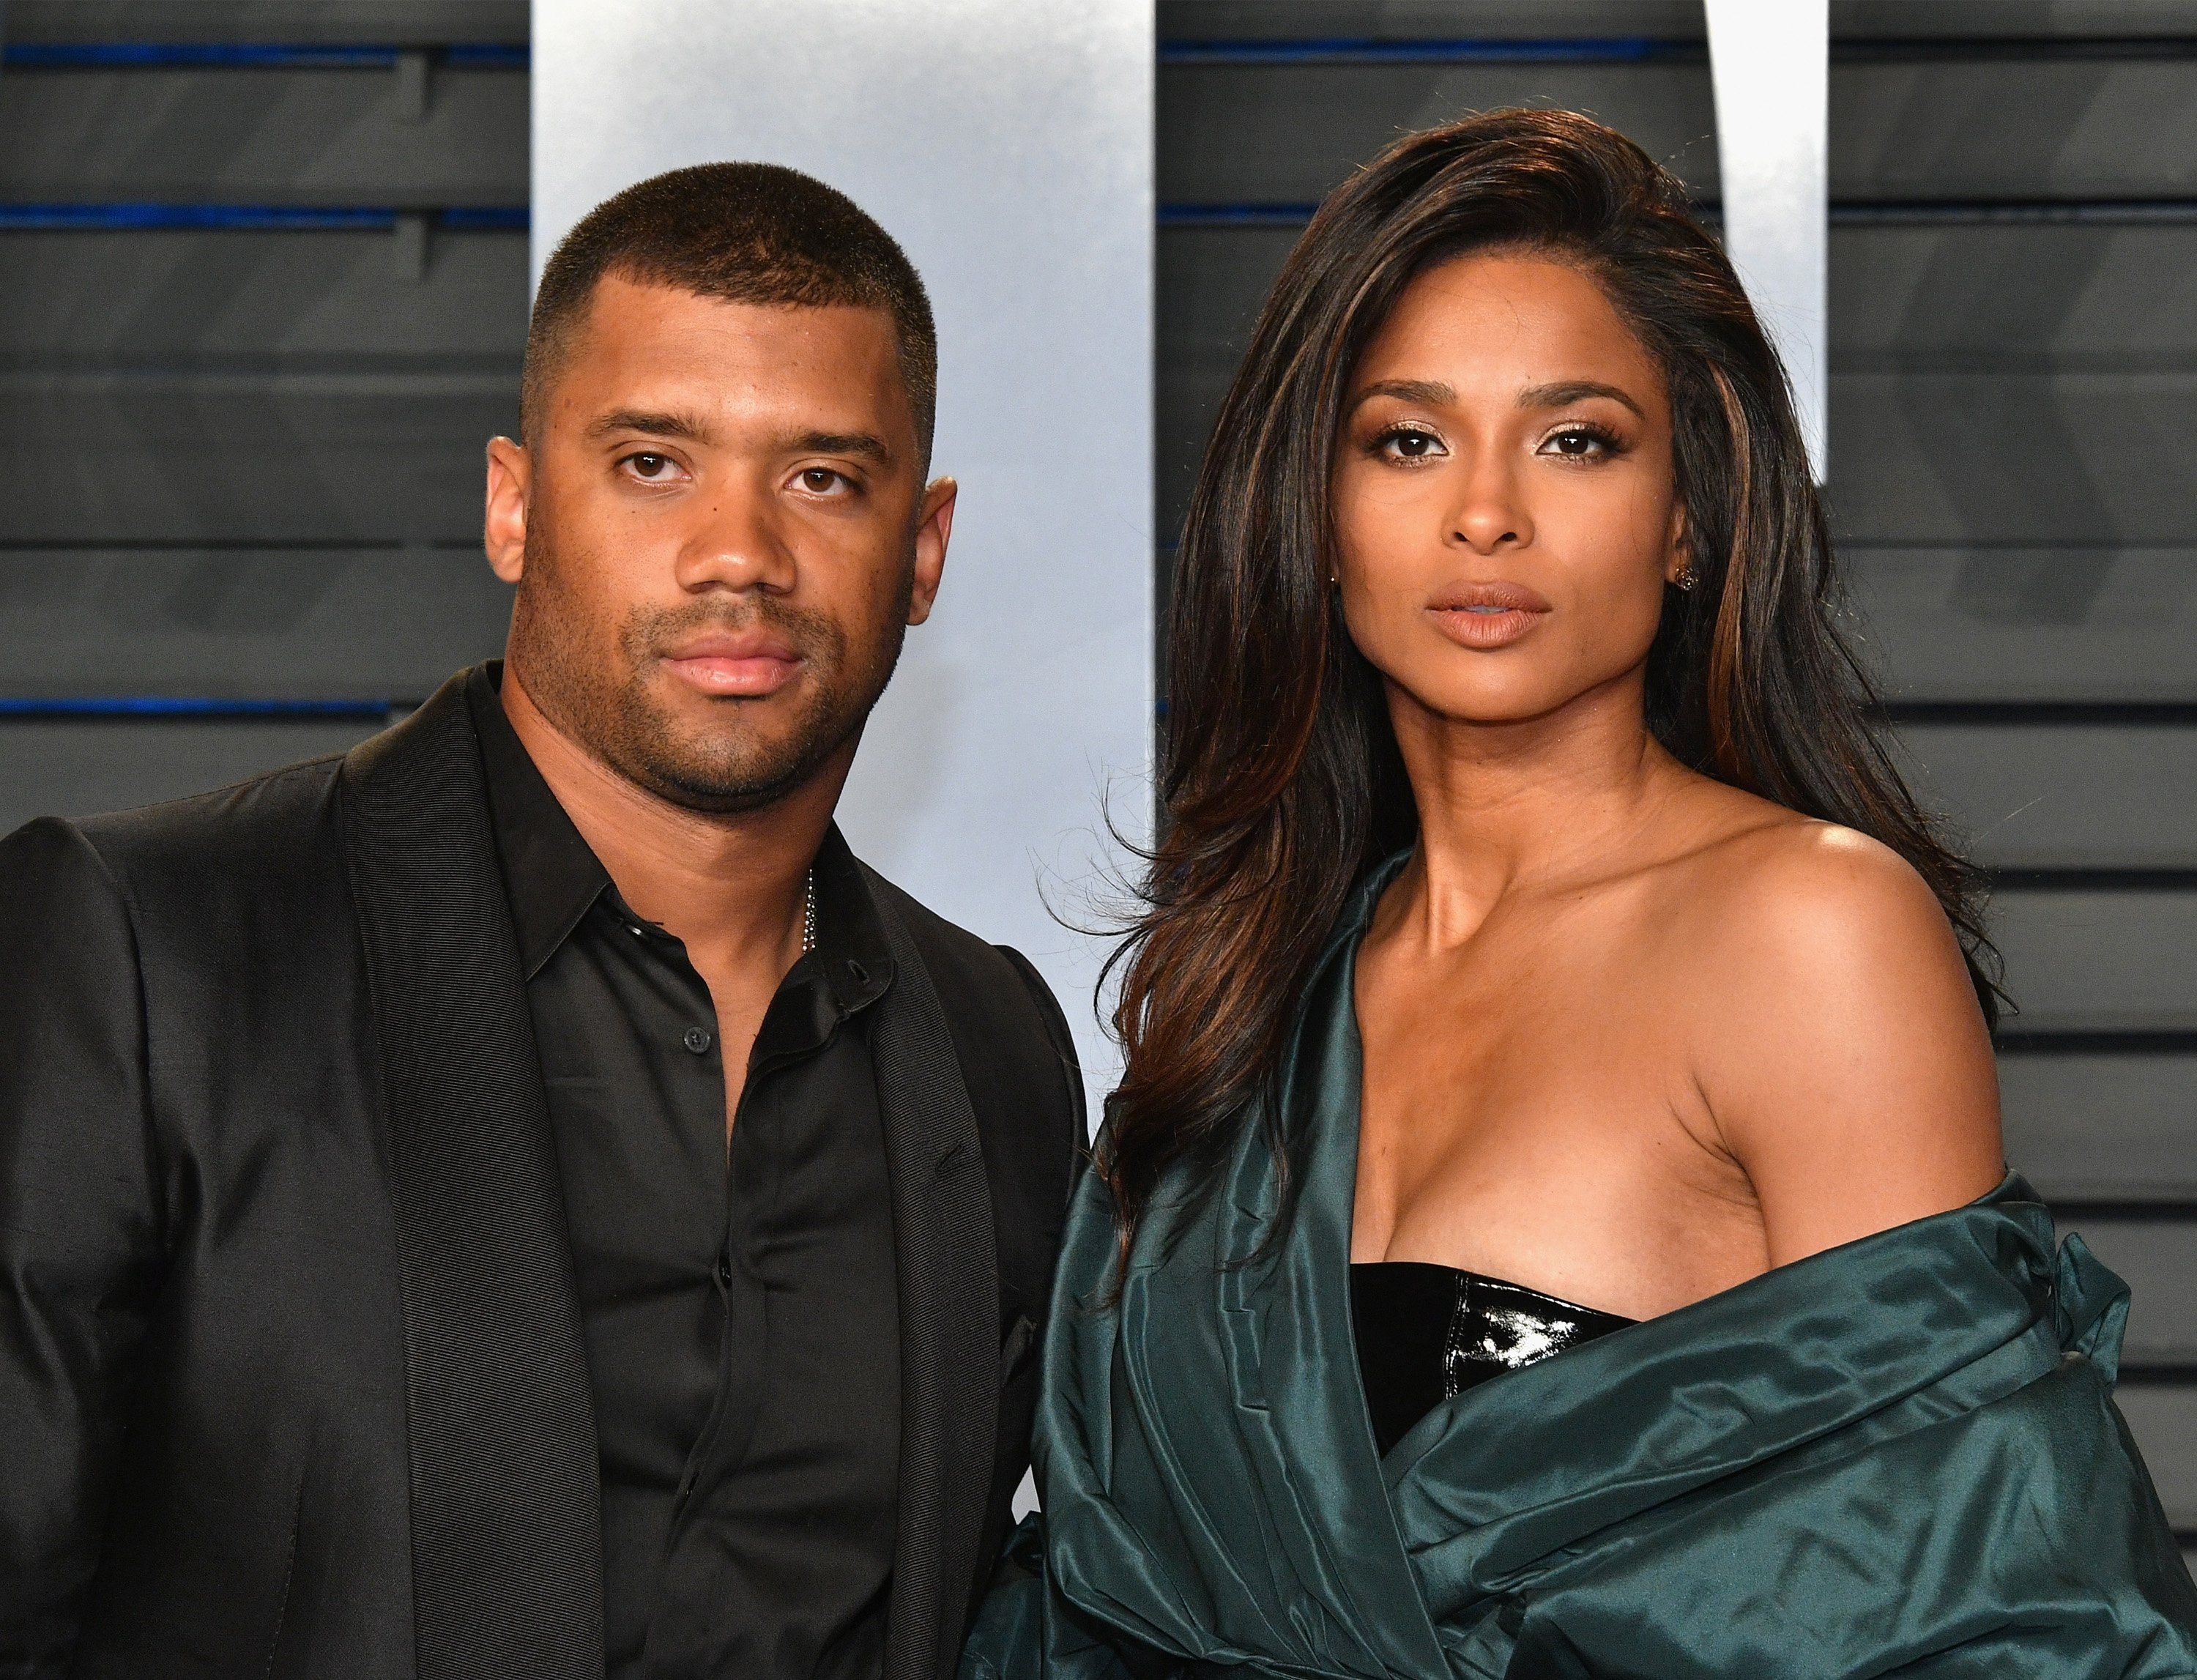 Russell Wilson and Ciara attend the 2018 Vanity Fair Oscar Party hosted by Radhika Jones at Wallis Annenberg Center for the Performing Arts on March 4, 2018 in Beverly Hills, California. | Photo: GettyImages